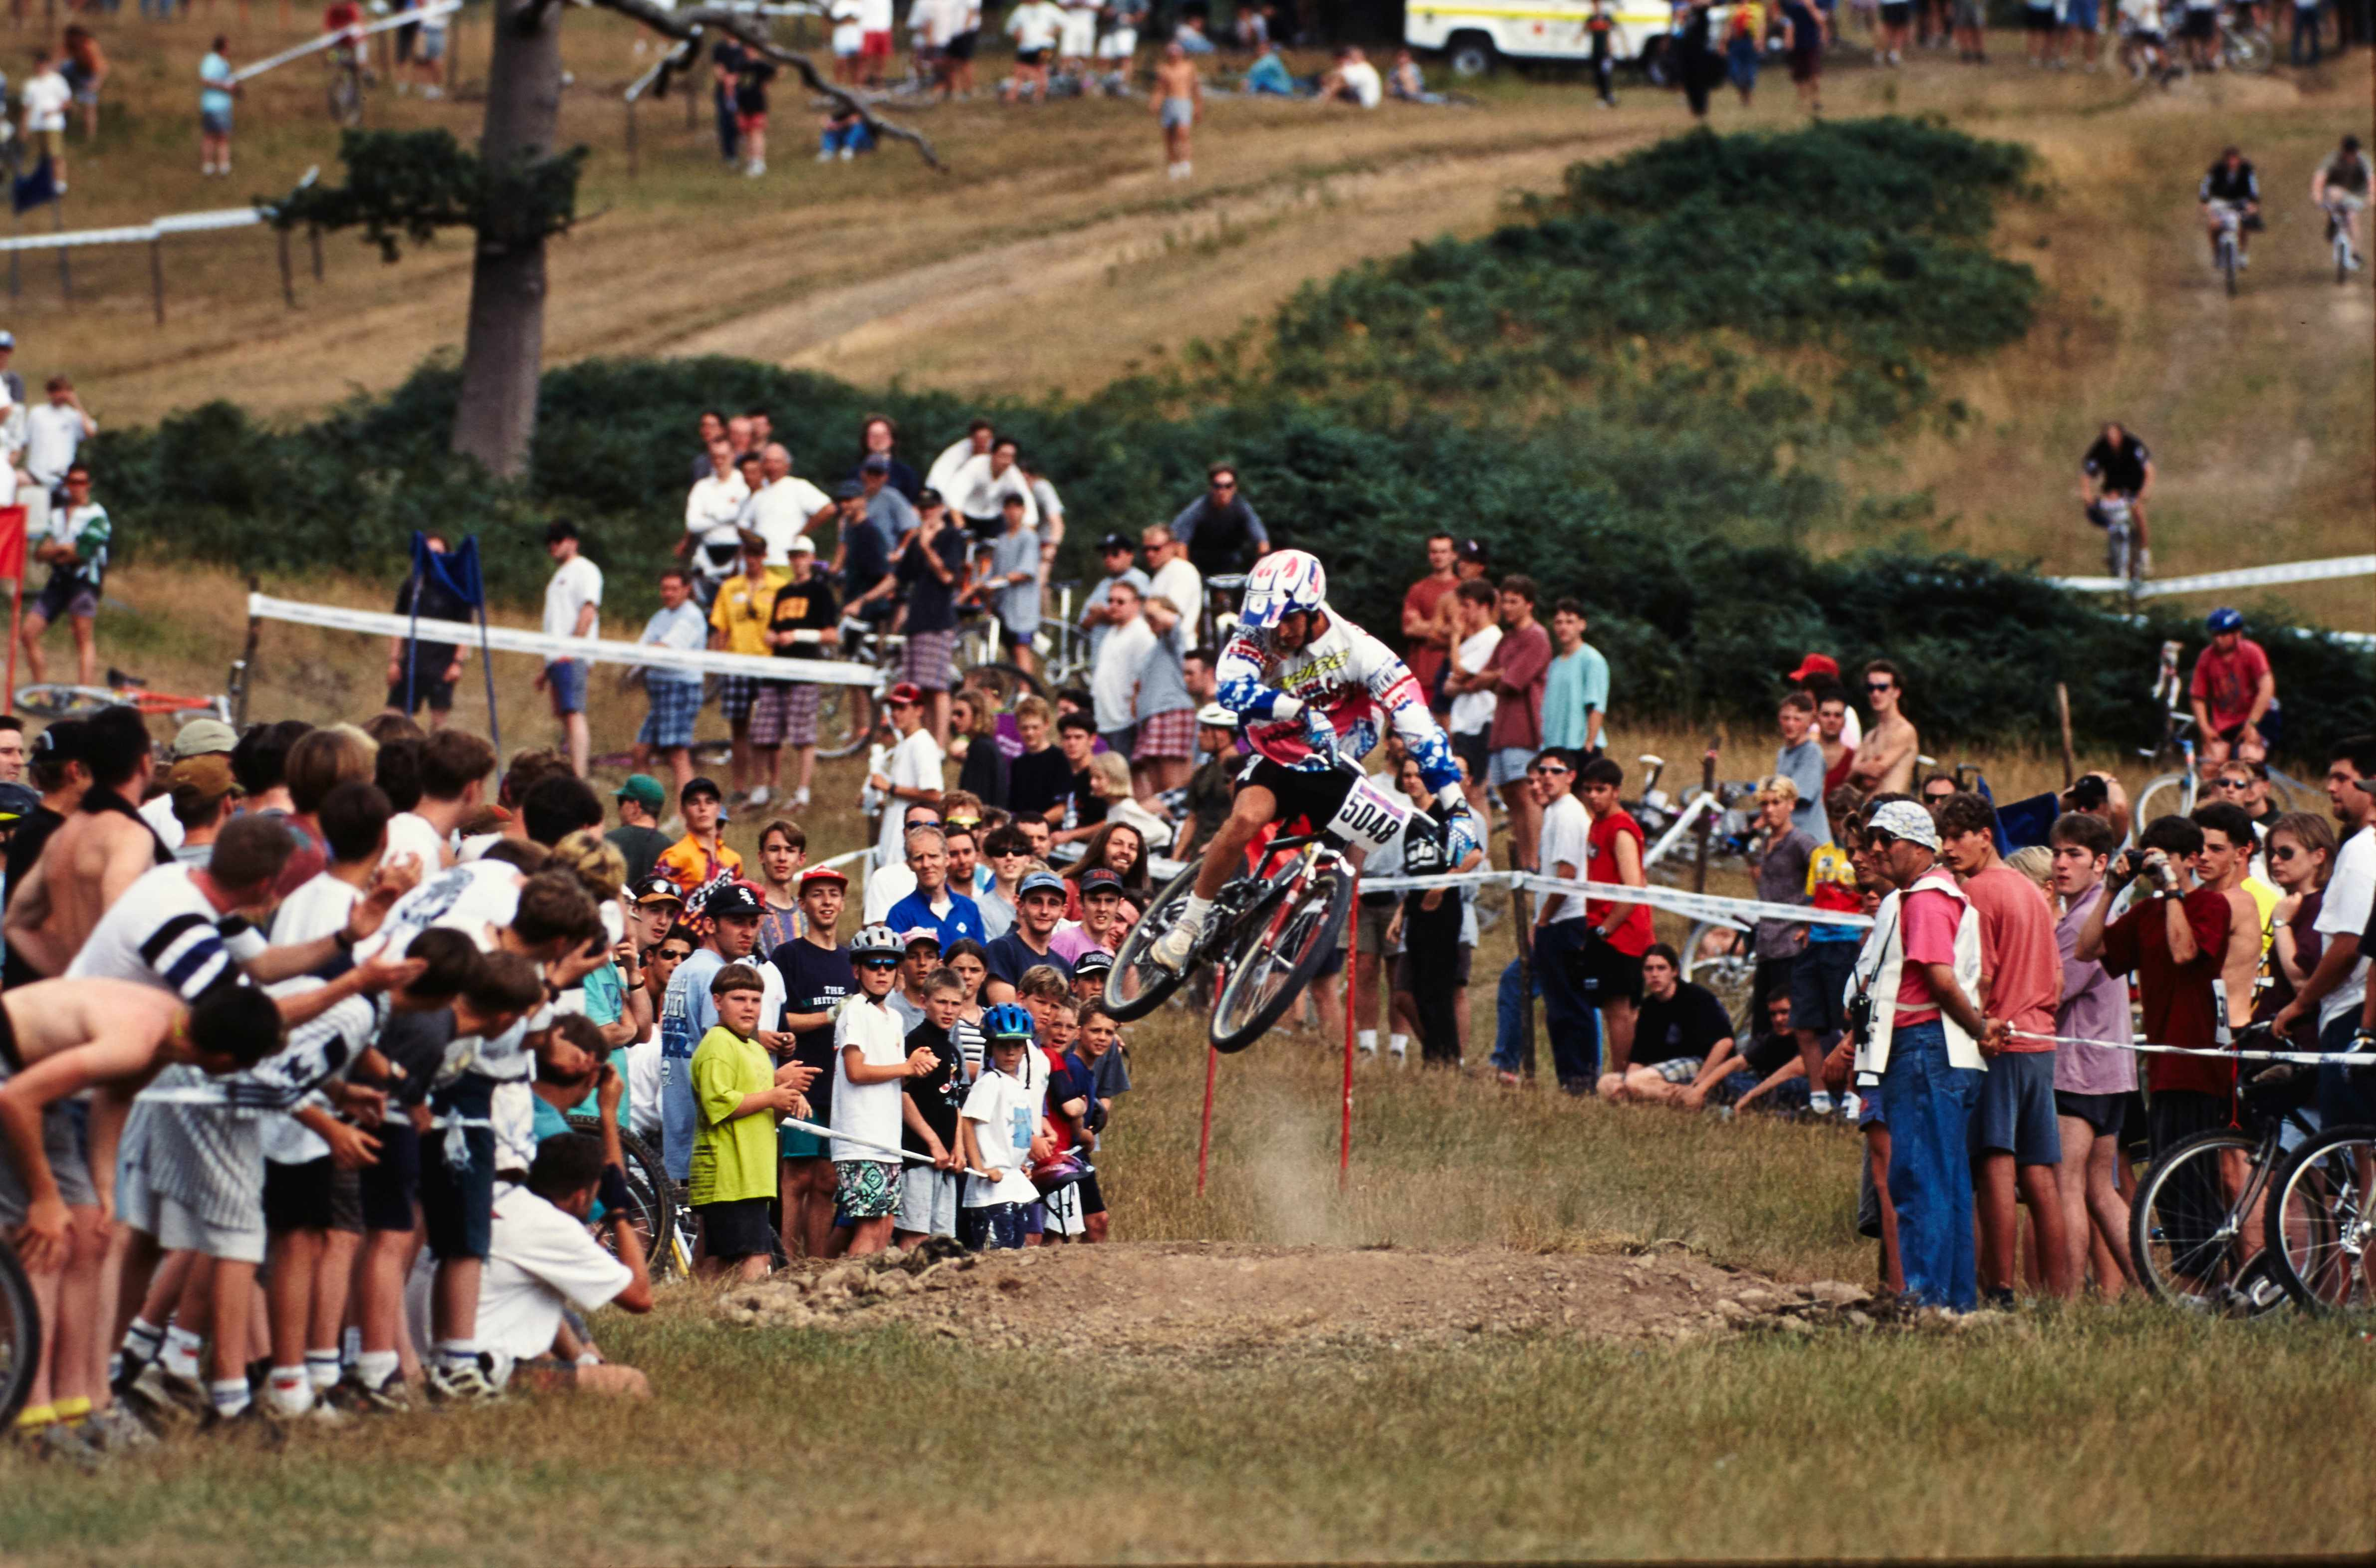 Tim Ponting whipping a jump at the 1995 Malverns Classic